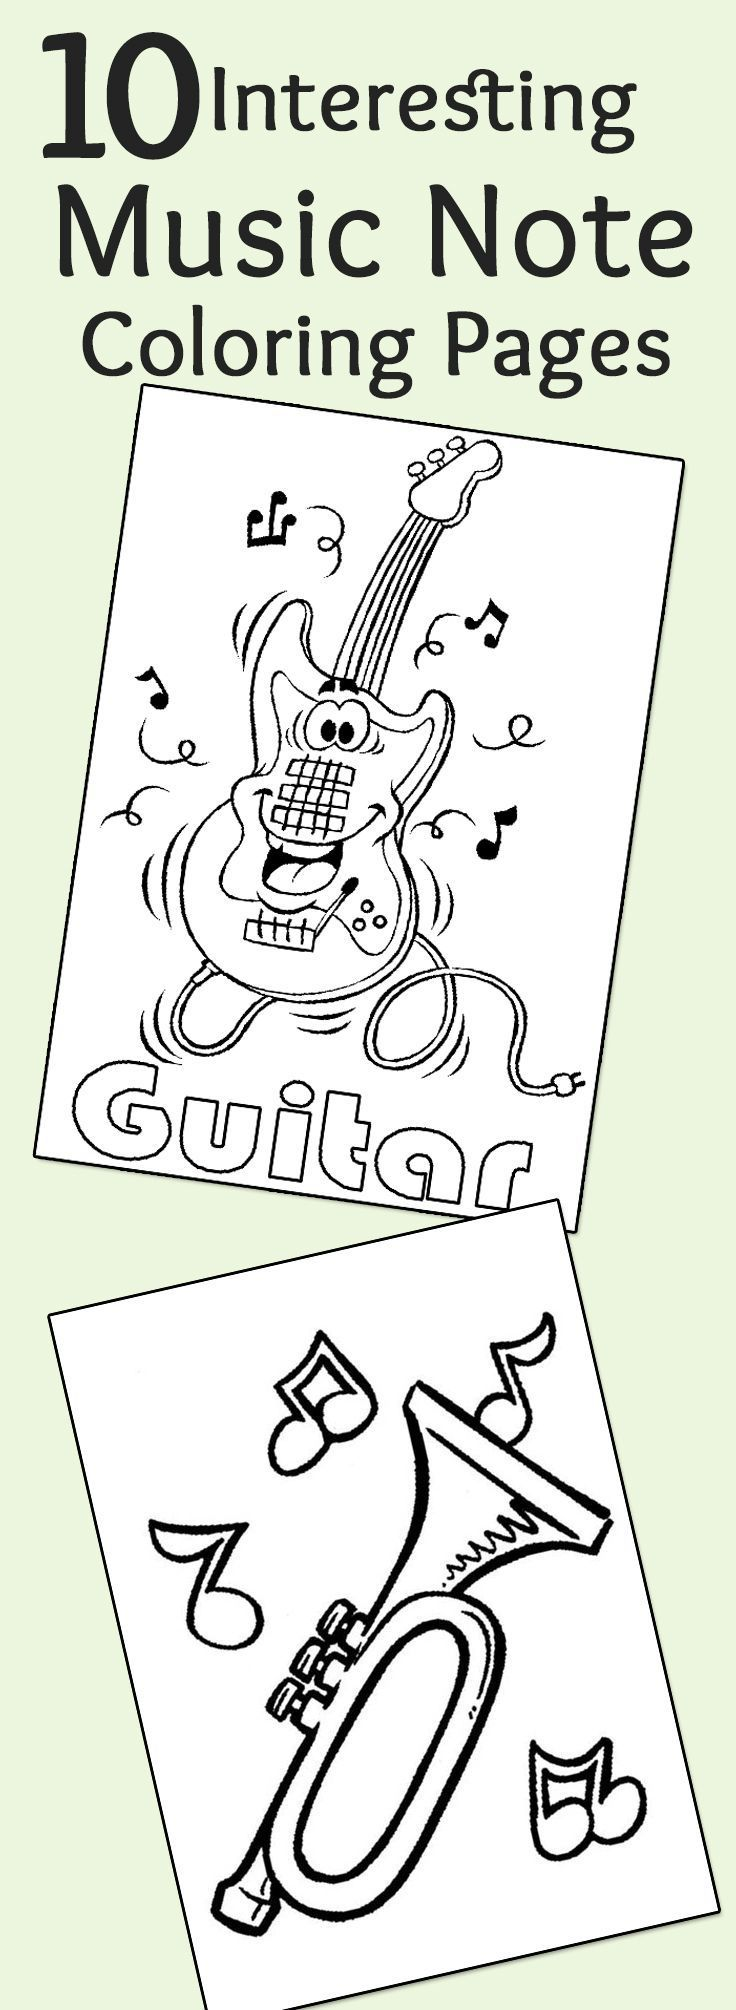 10 Interesting Music Note Coloring Pages For Your Music Lover Little Kids